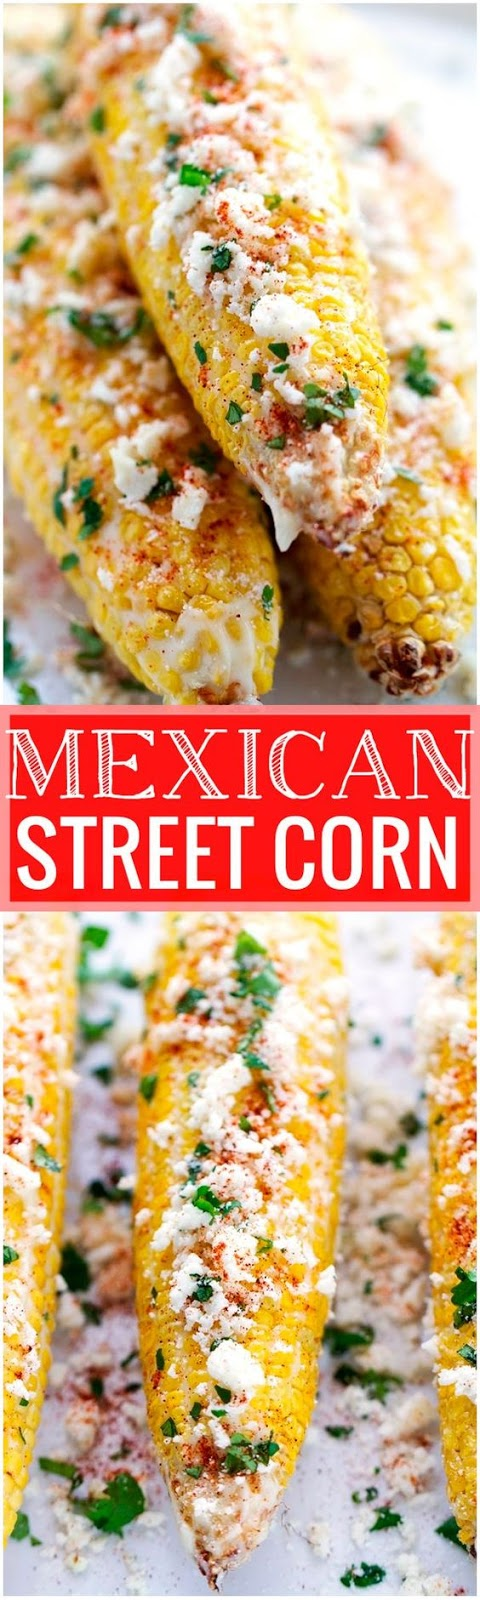 The perfect corn on the cob recipe for this summer! Learn how to make Mexican Street Corn at home, it's so easy to make! You can grill it or make it in the oven with a garlic mayo, lime juice, cotija cheese, and chili powder for a little heat. Serve it for a barbecue party or enjoy them as a snack!